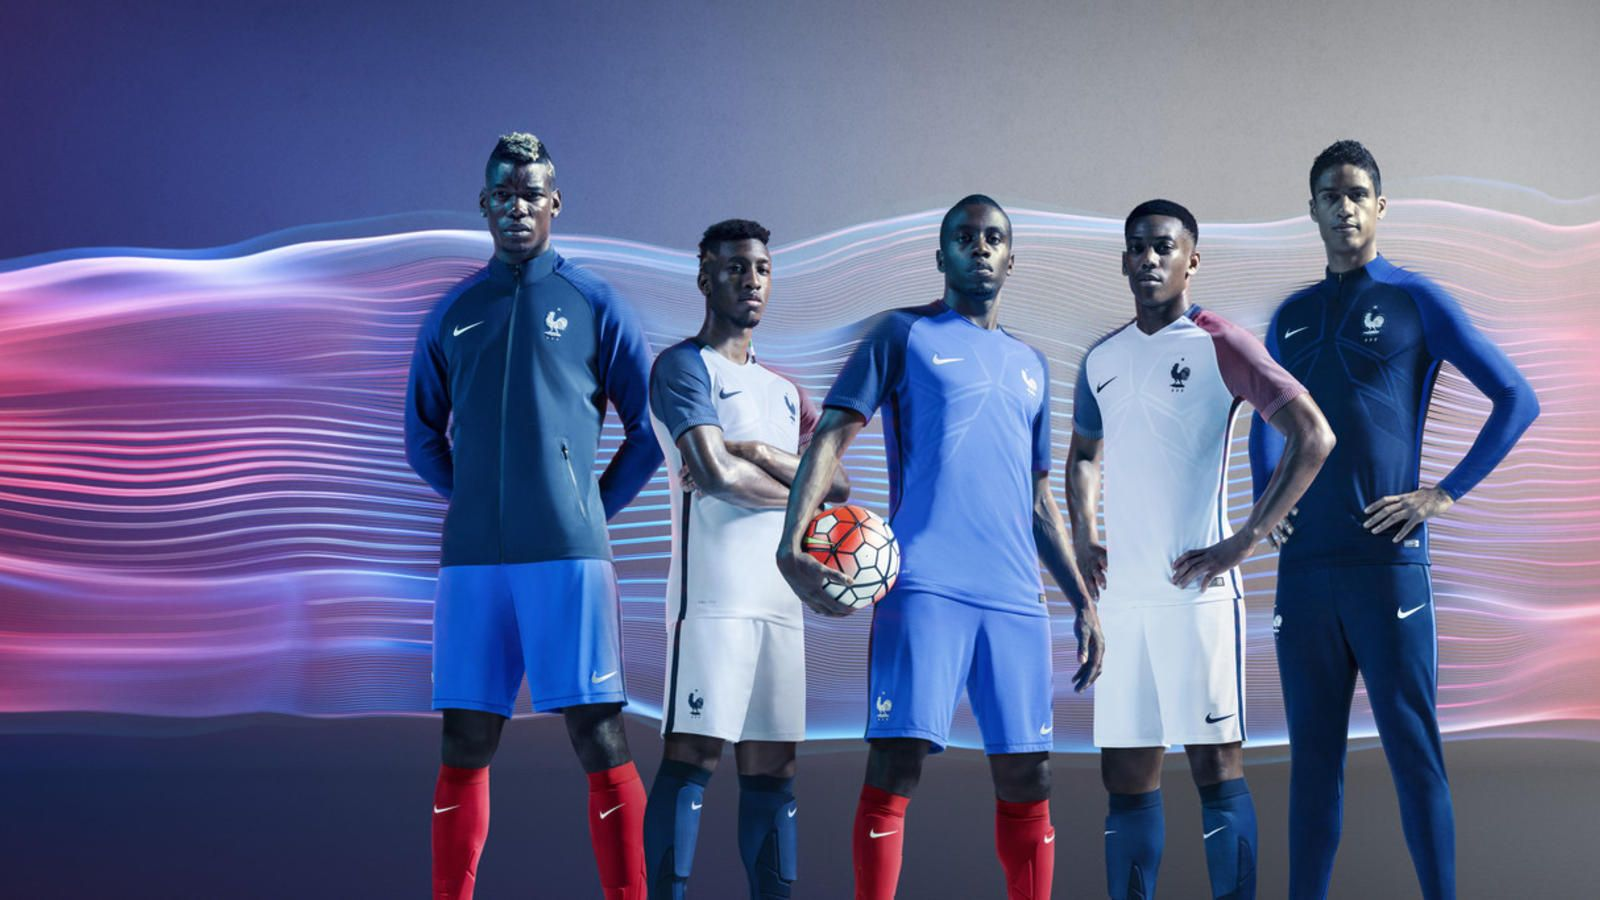 France players debut the new kits they'll wear at this summer's European Championship on home soil.